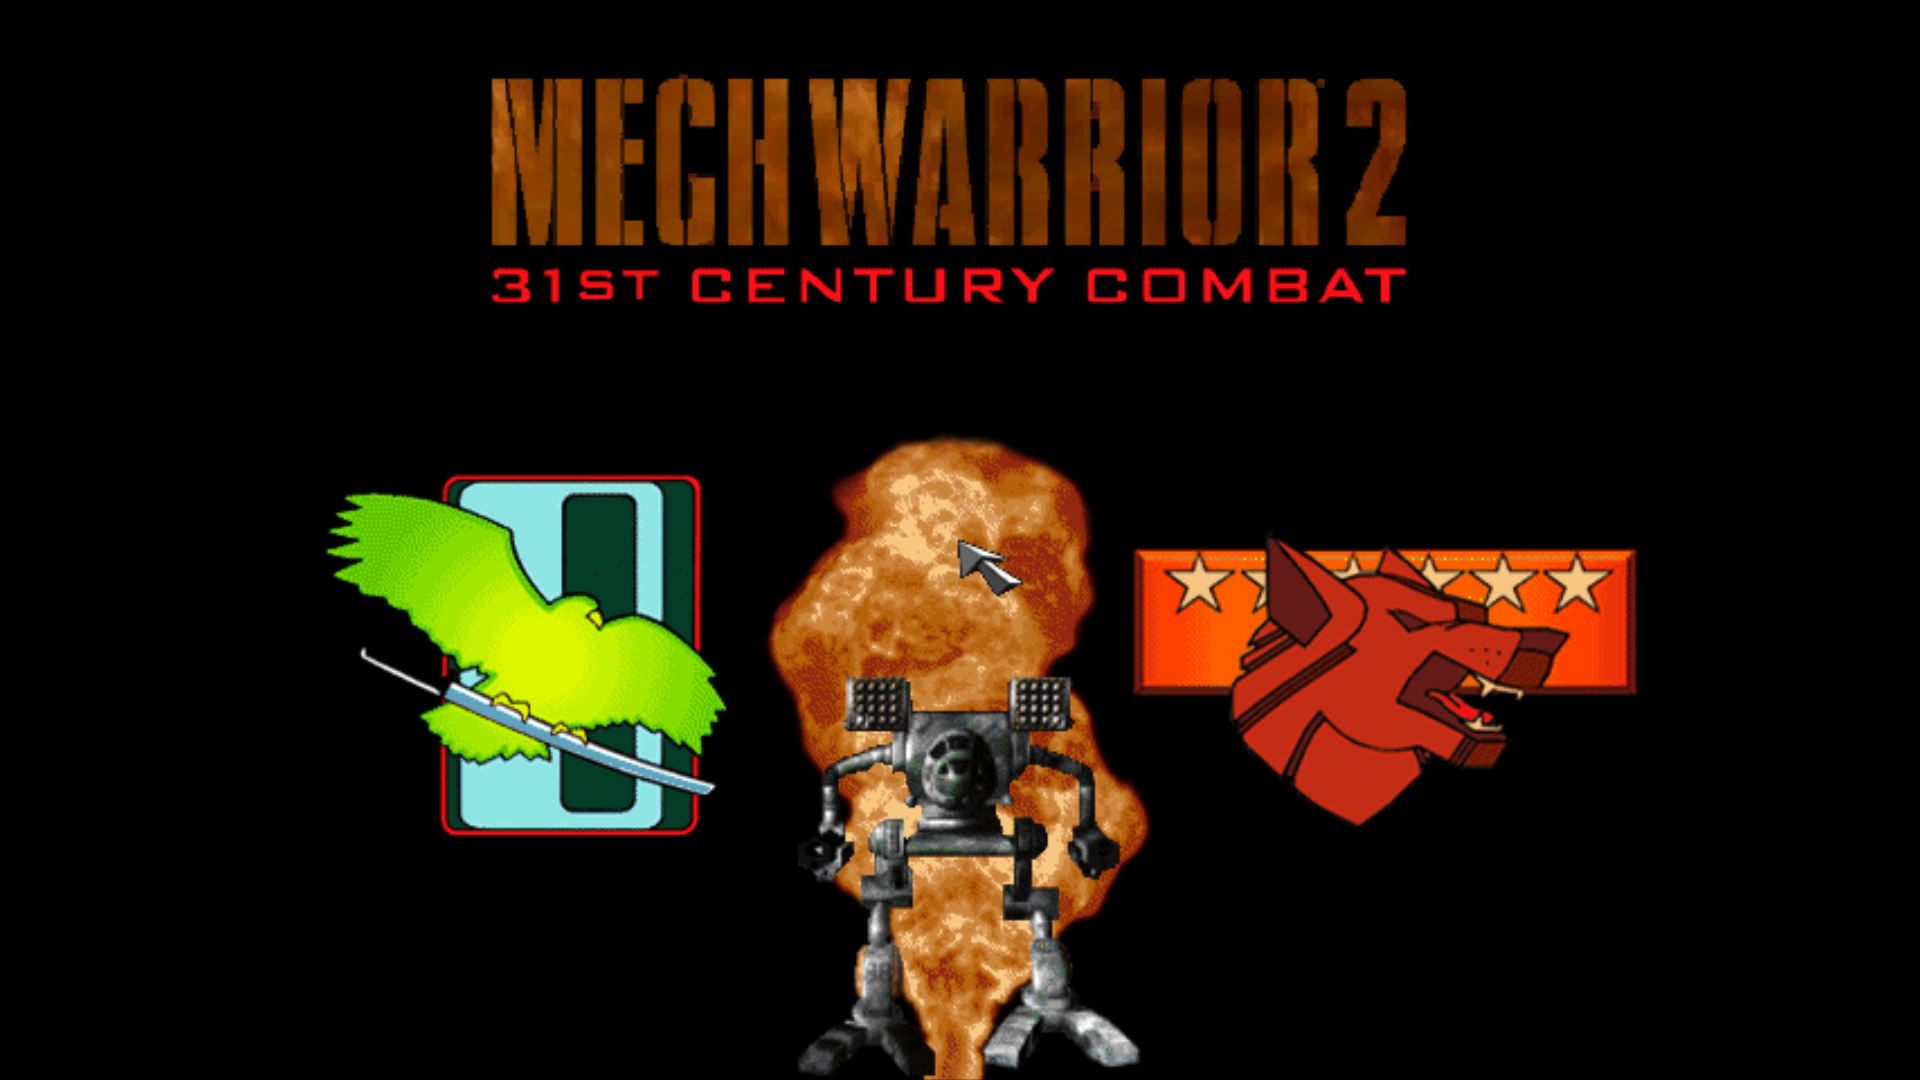 Figure 1 - Mech Warrior 2 Menu – Play Clan Jade Falcon, Clan Wolf, or simulated battles